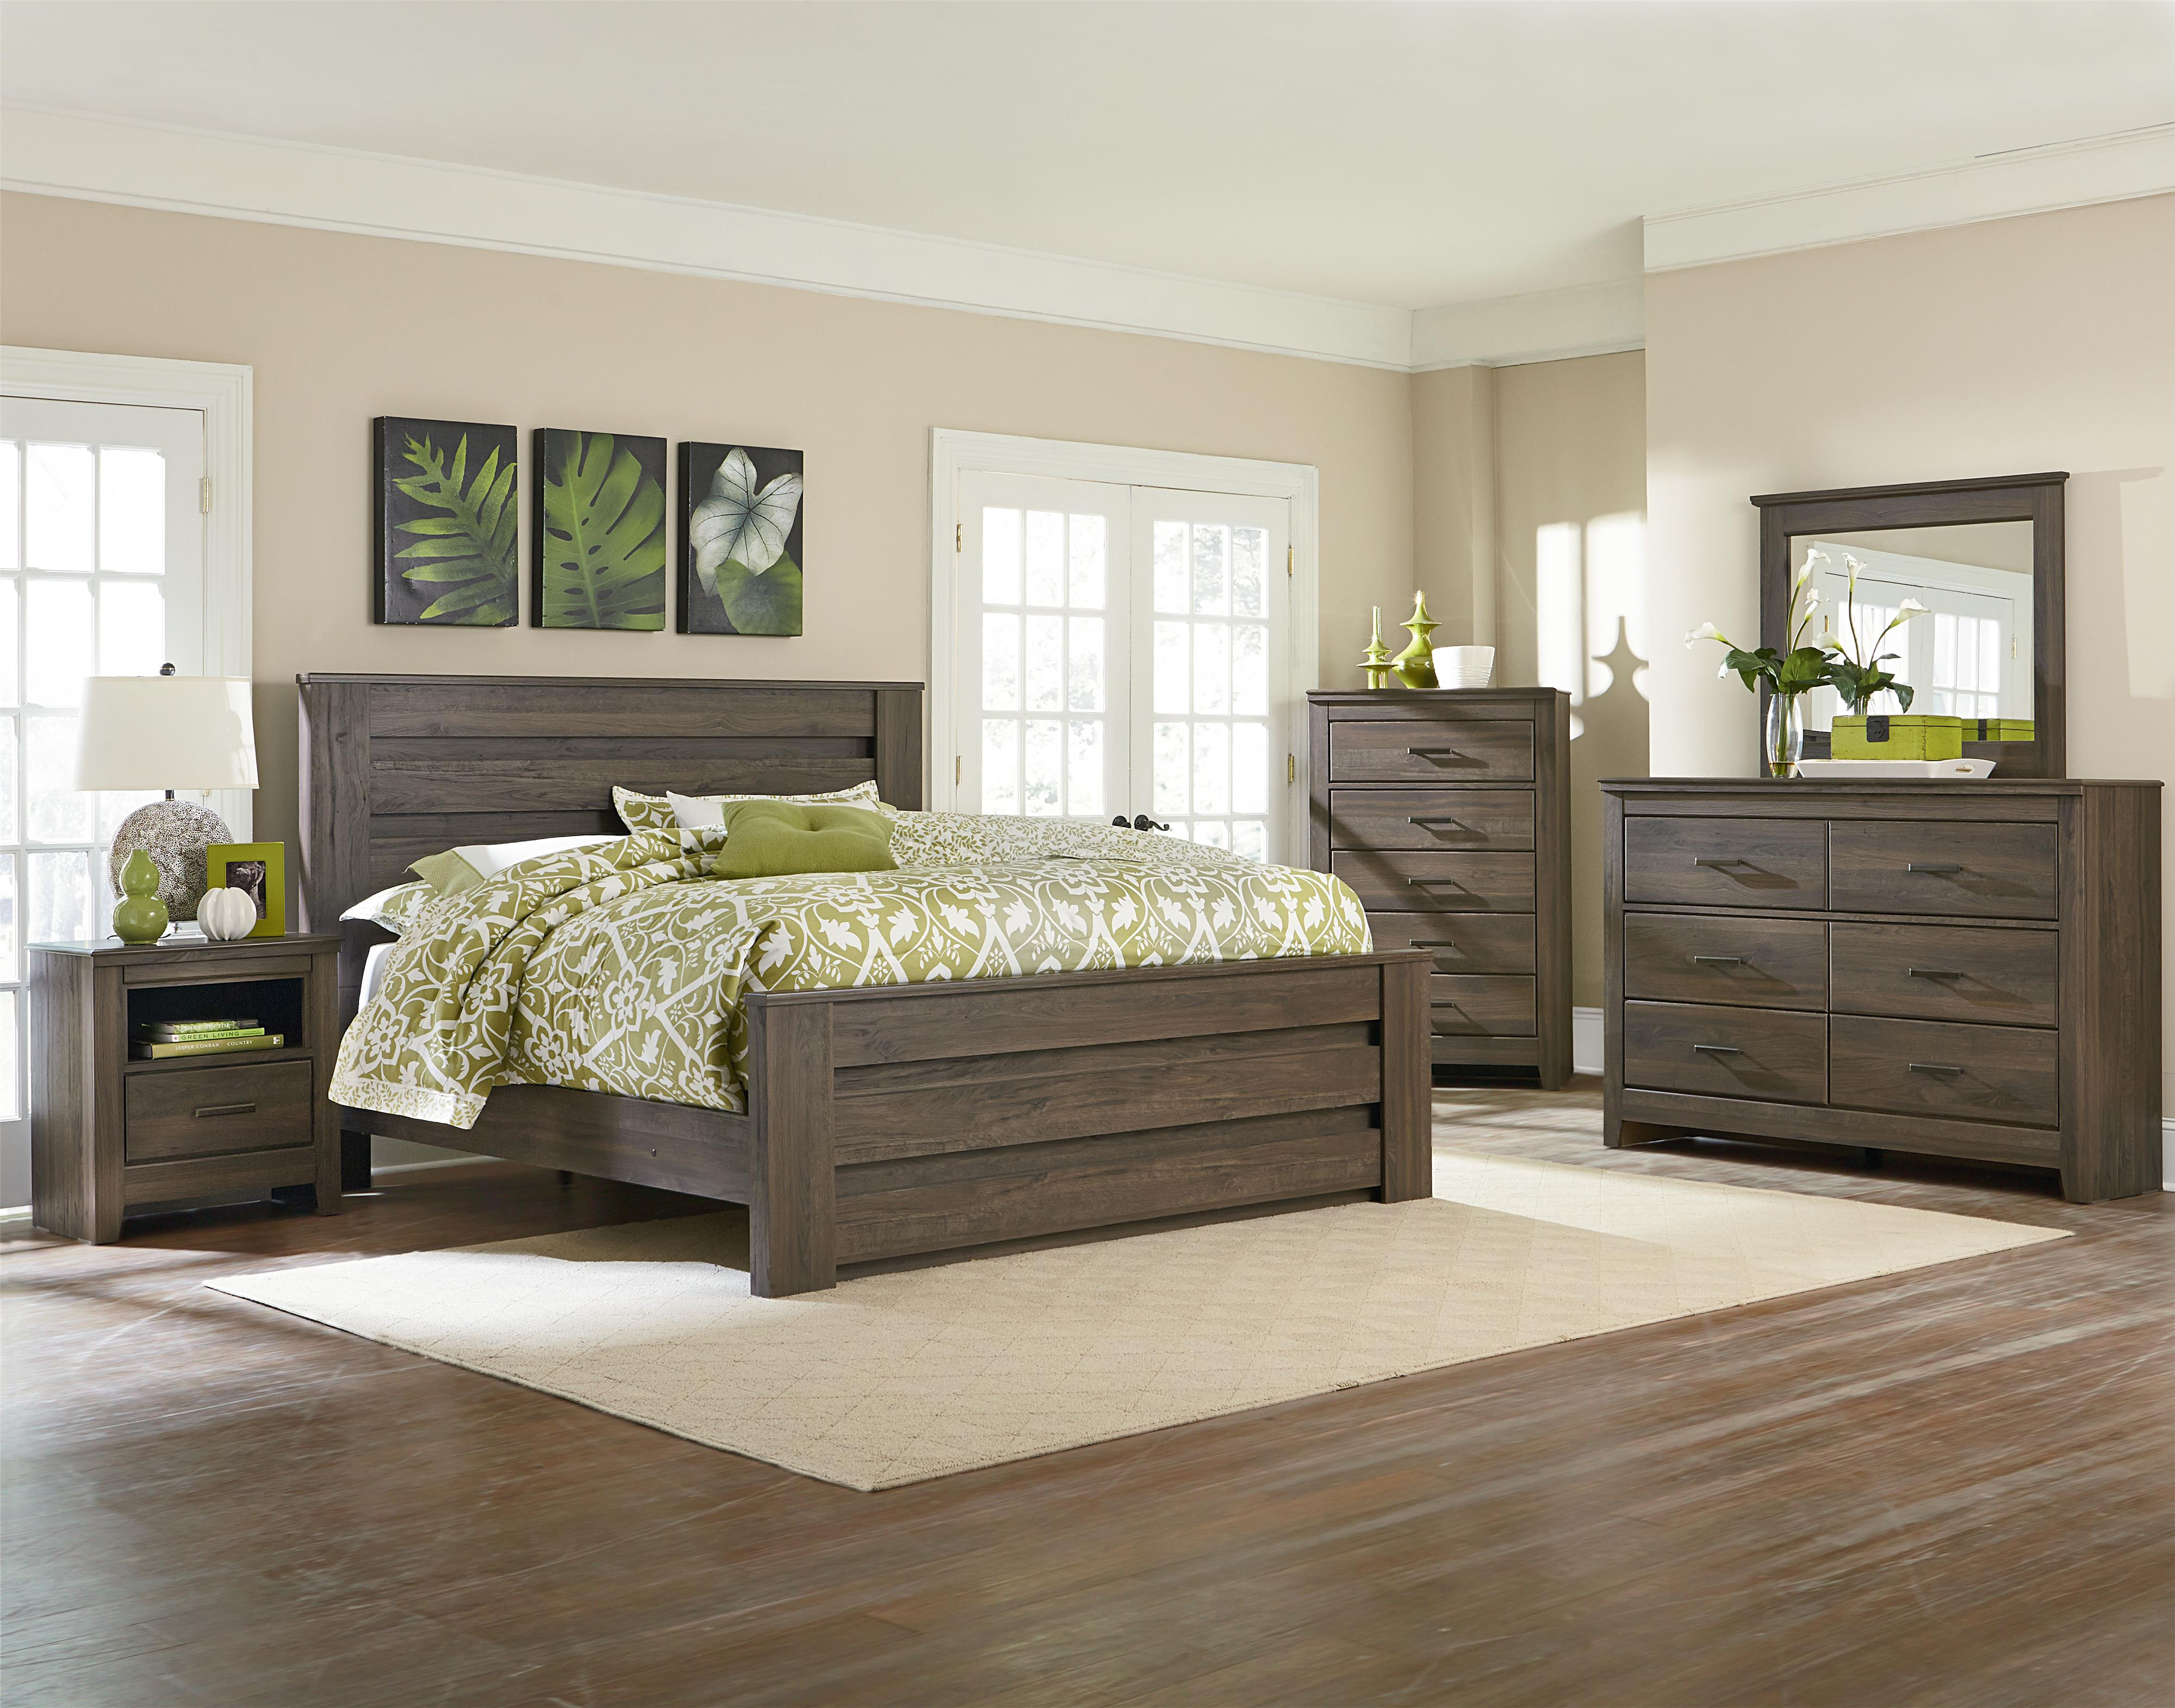 Standard Furniture Hayward King Bedroom Group Olinde 39 S Furniture Bedroom Group